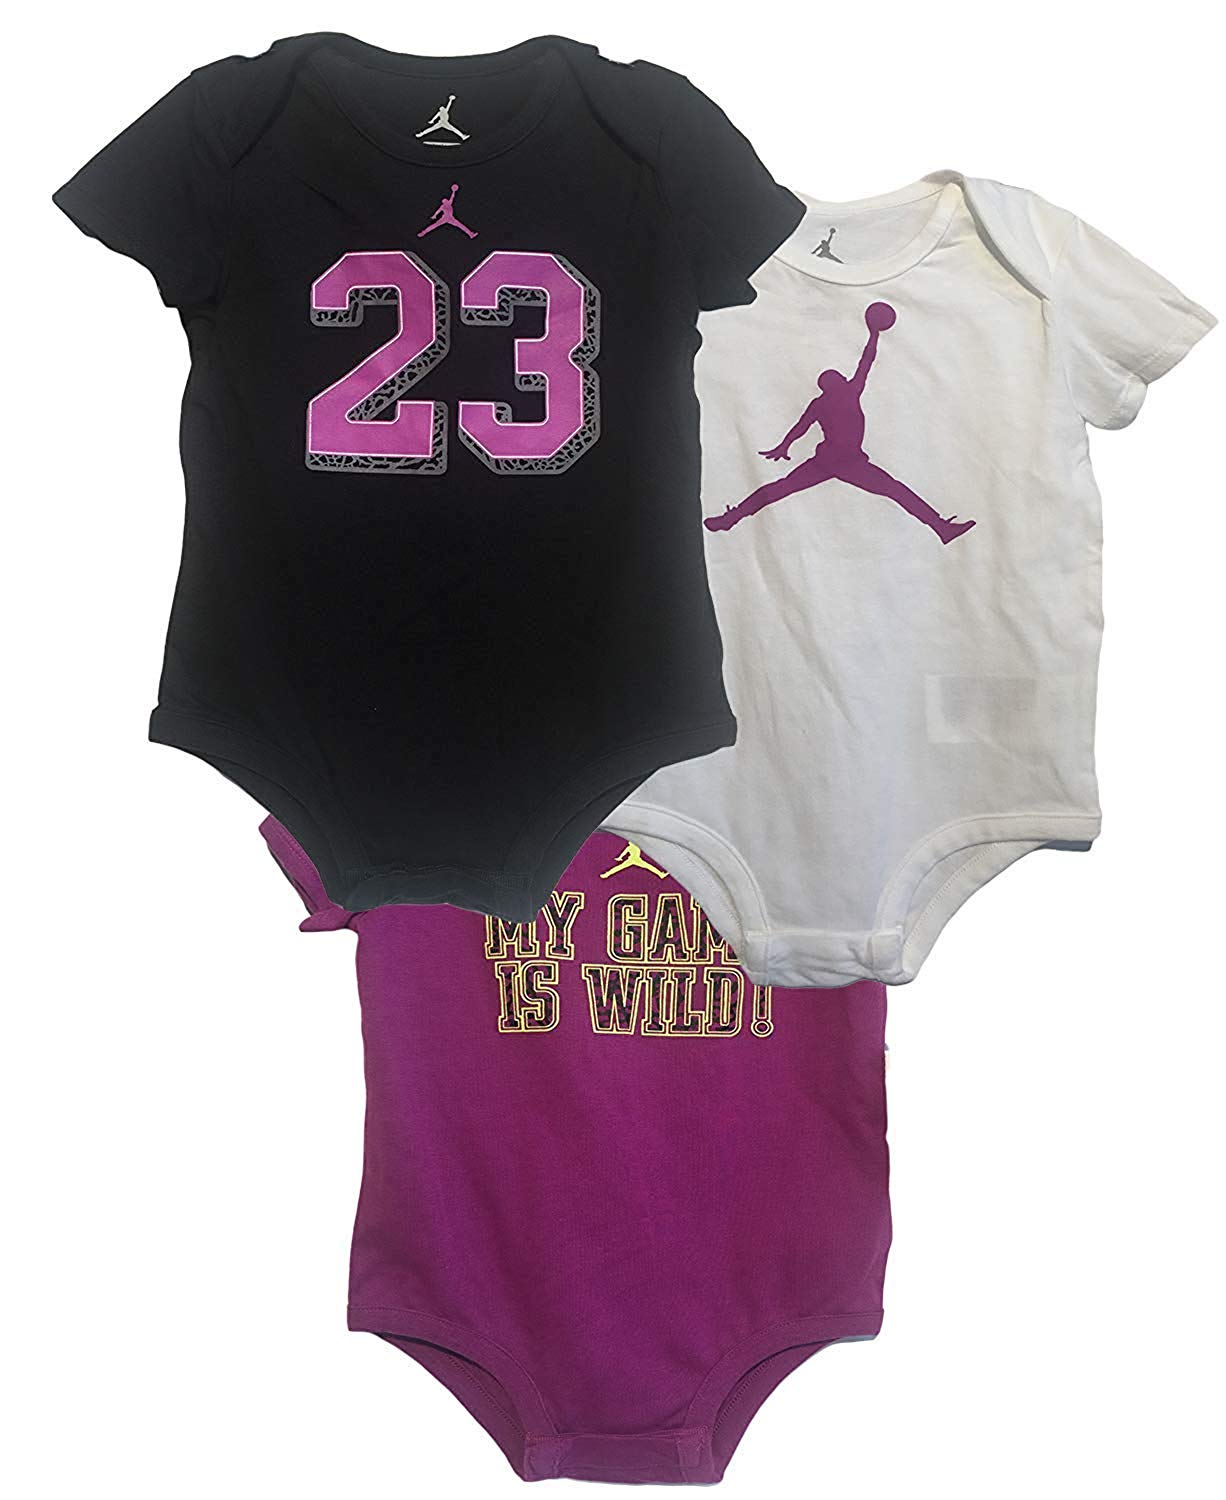 Baby Girls Air Jordan Infant 3pc Bodysuit Set Baby Clothes Baby Clothing Baby Boy Clothes Baby Girl Clothes Cheap Name Brand Clothes For Kids Toddler Name Brand Clothes Cheap Name Brand Baby Clothes Toddler